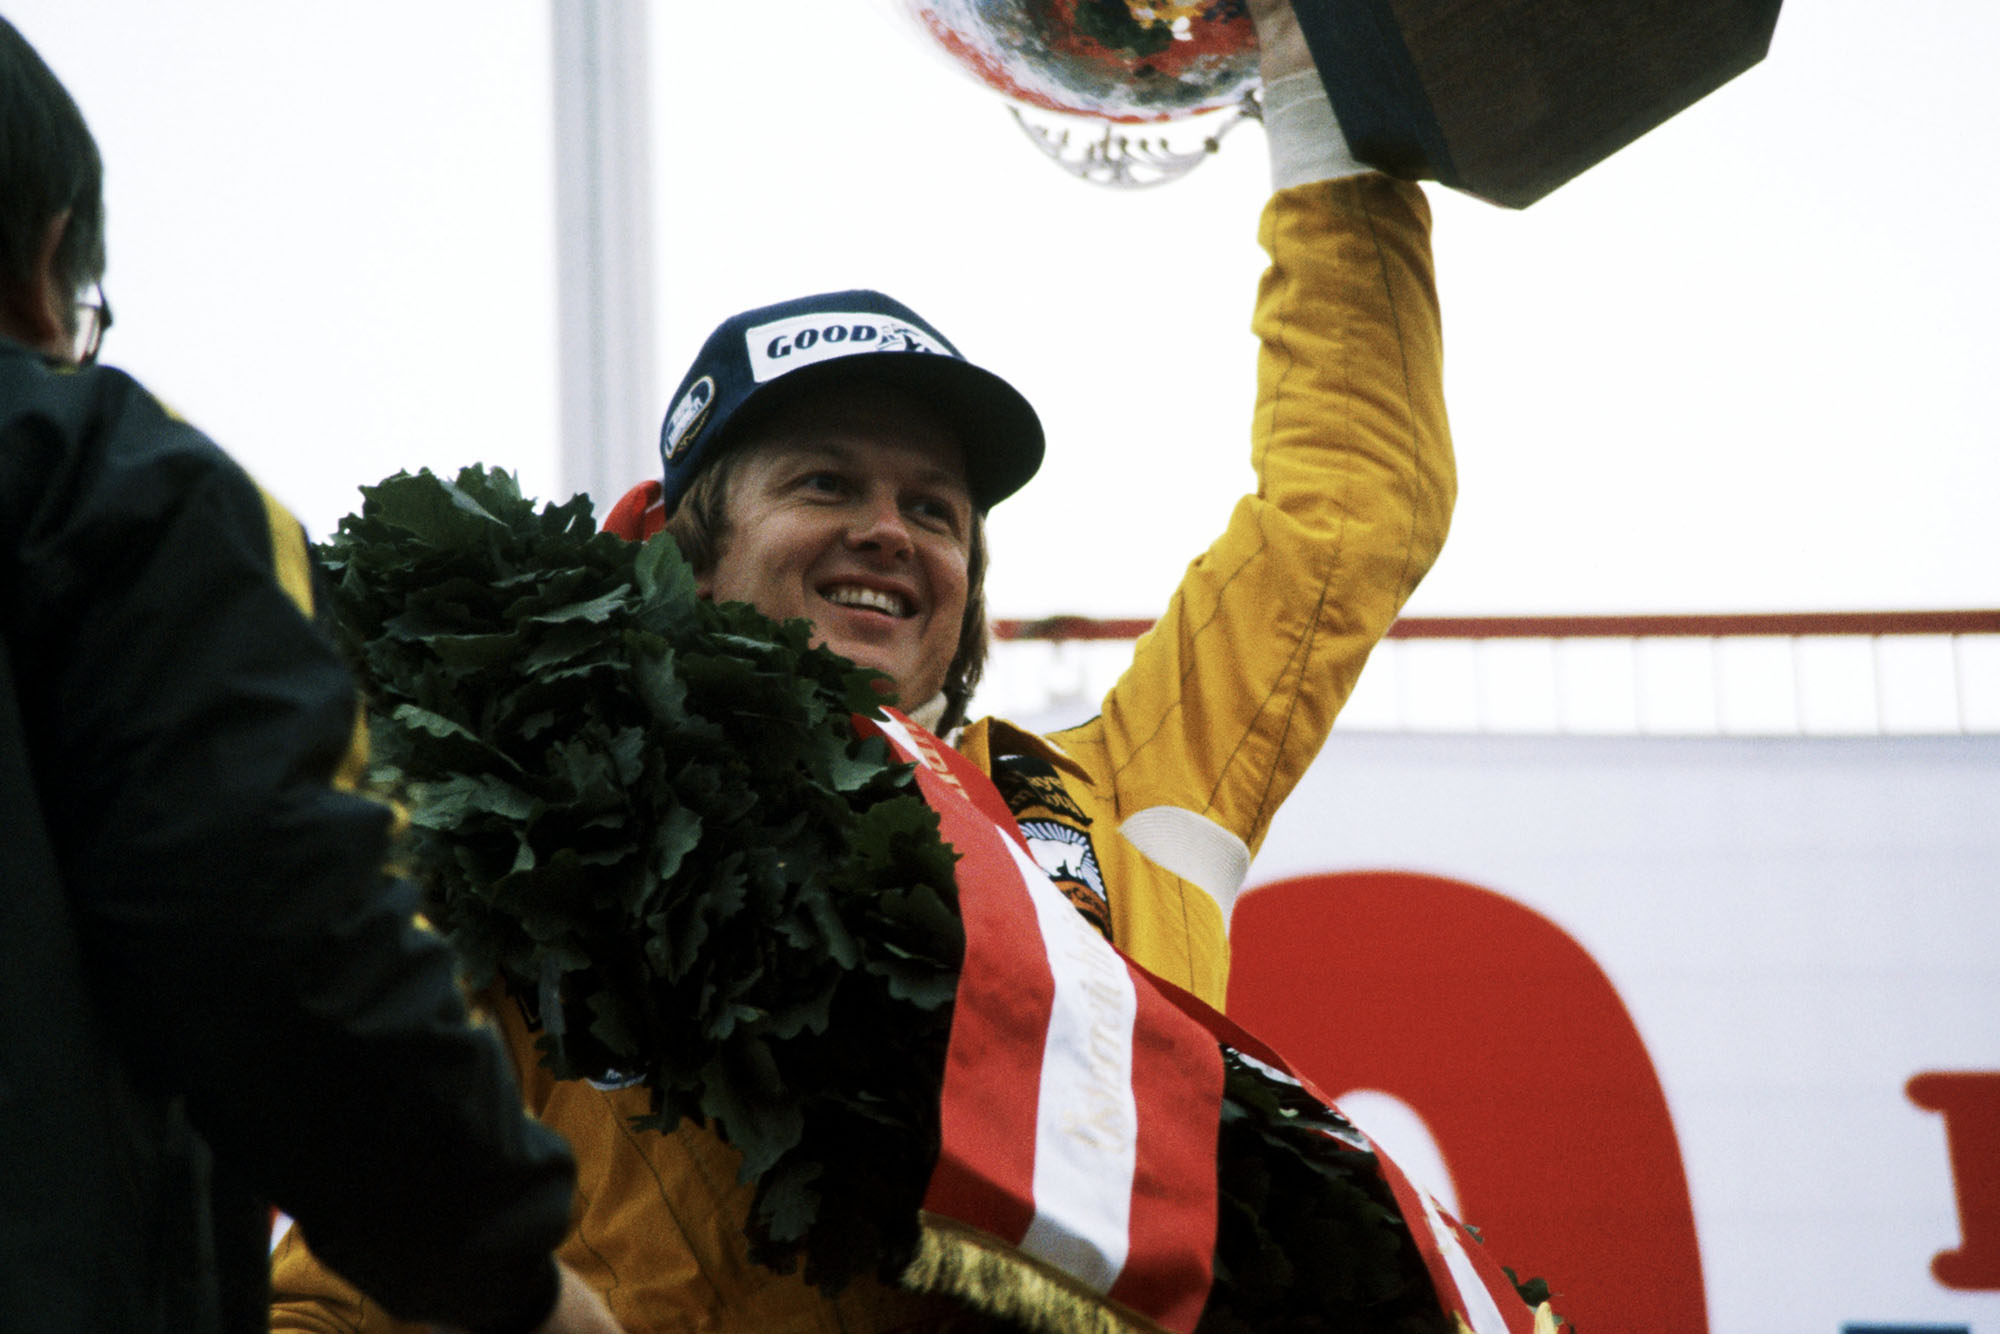 Ronnie Peterson celebrates on the podium after winning the 1978 Austrian Grand Prix, Österreichring.